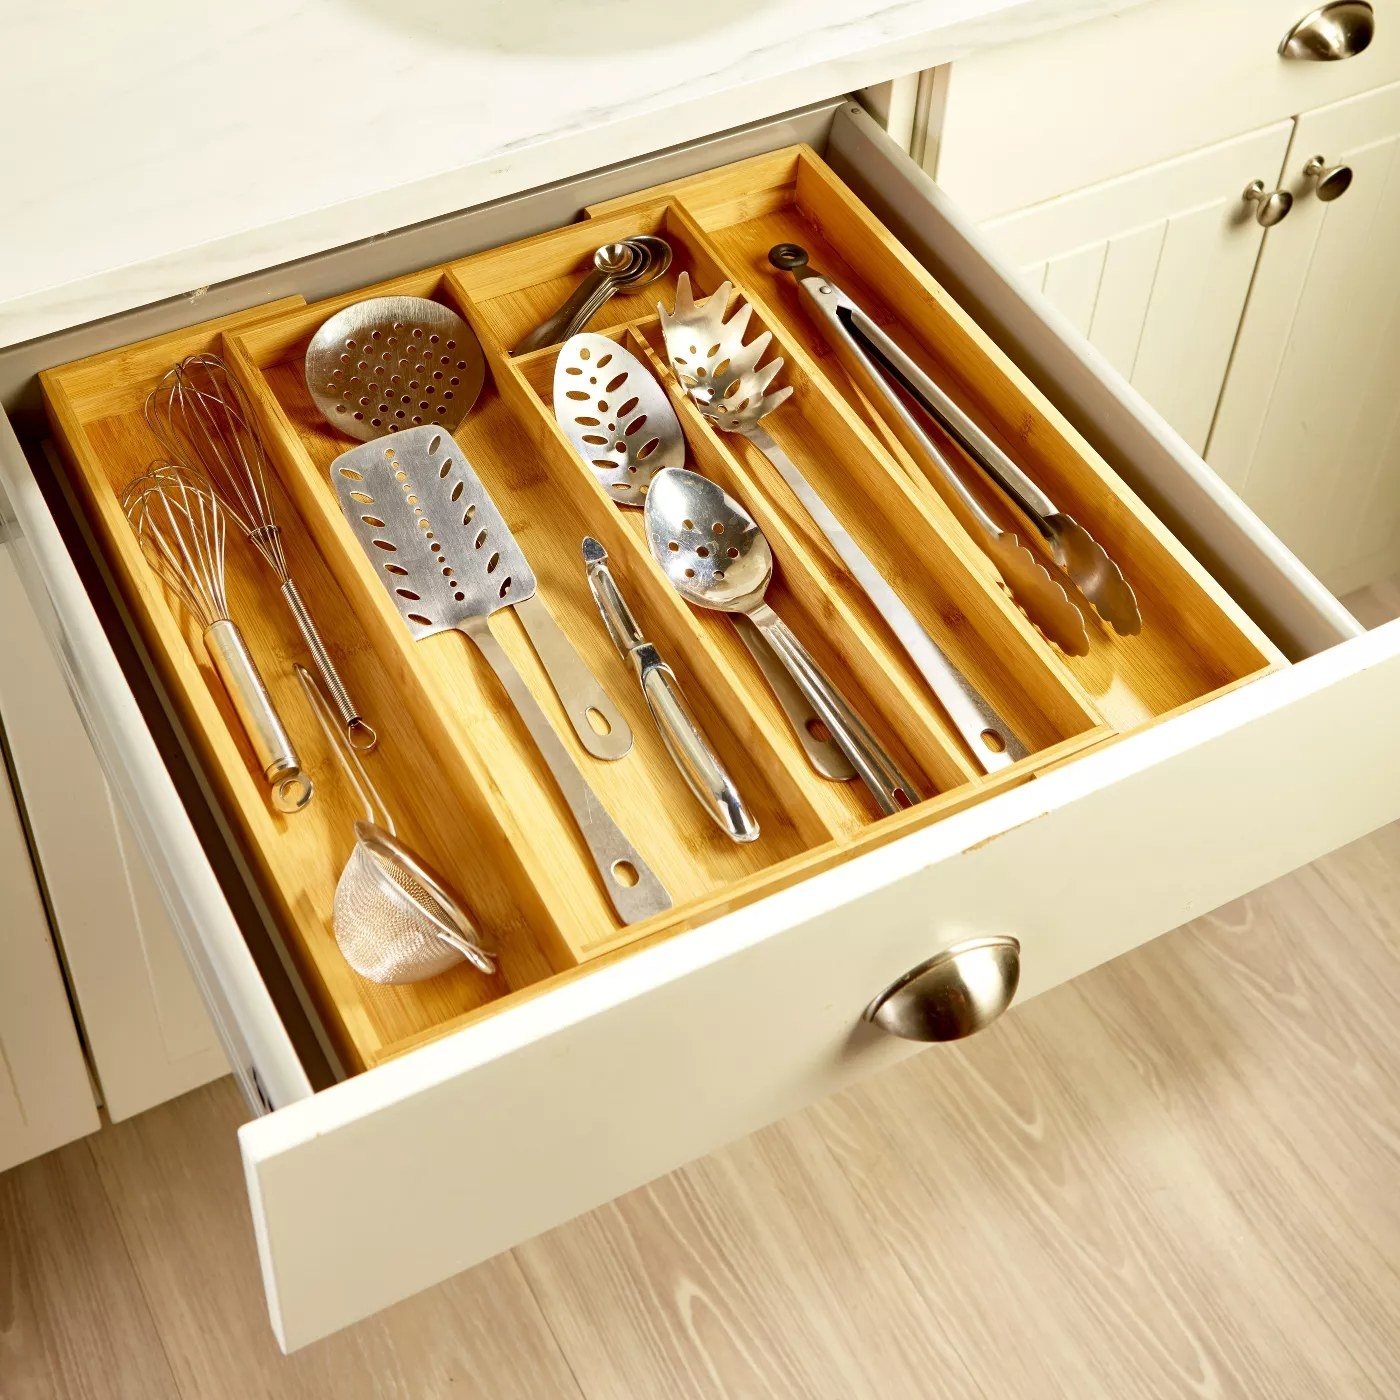 The tray in an opened drawer with kitchen utensils inside